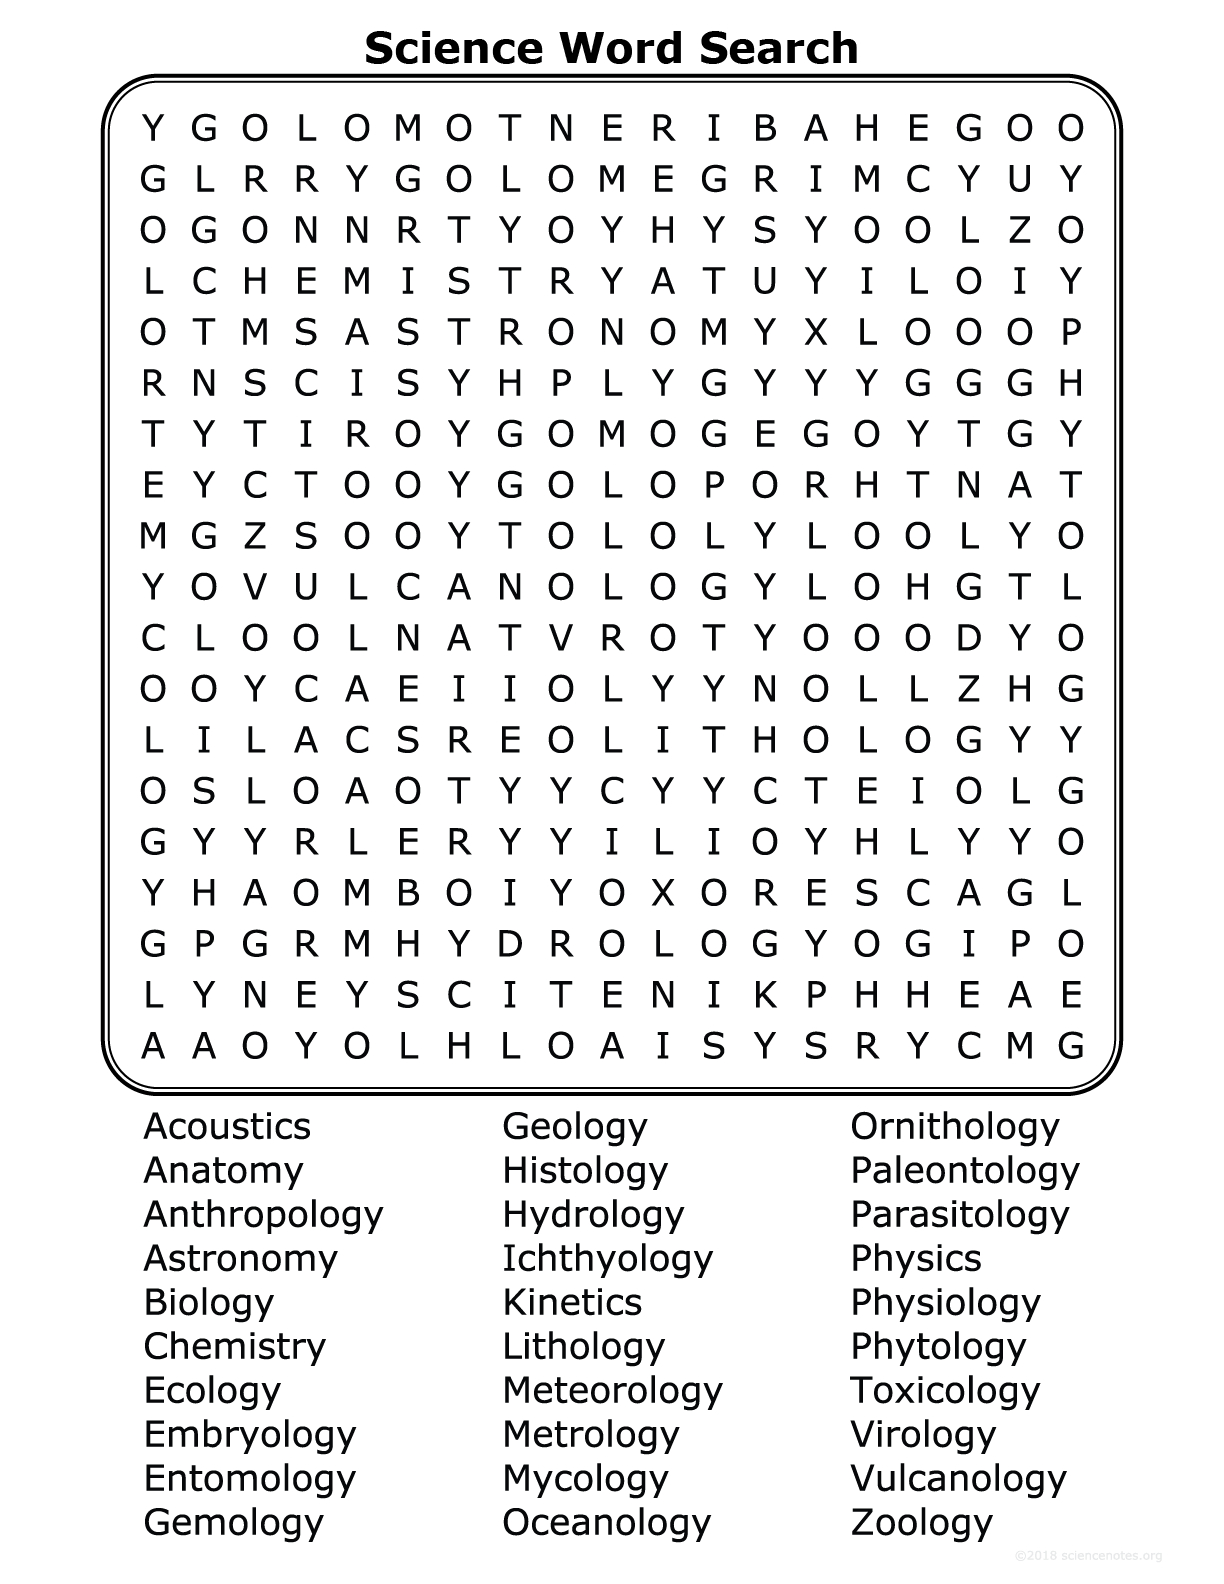 Science Disciplines Word Search